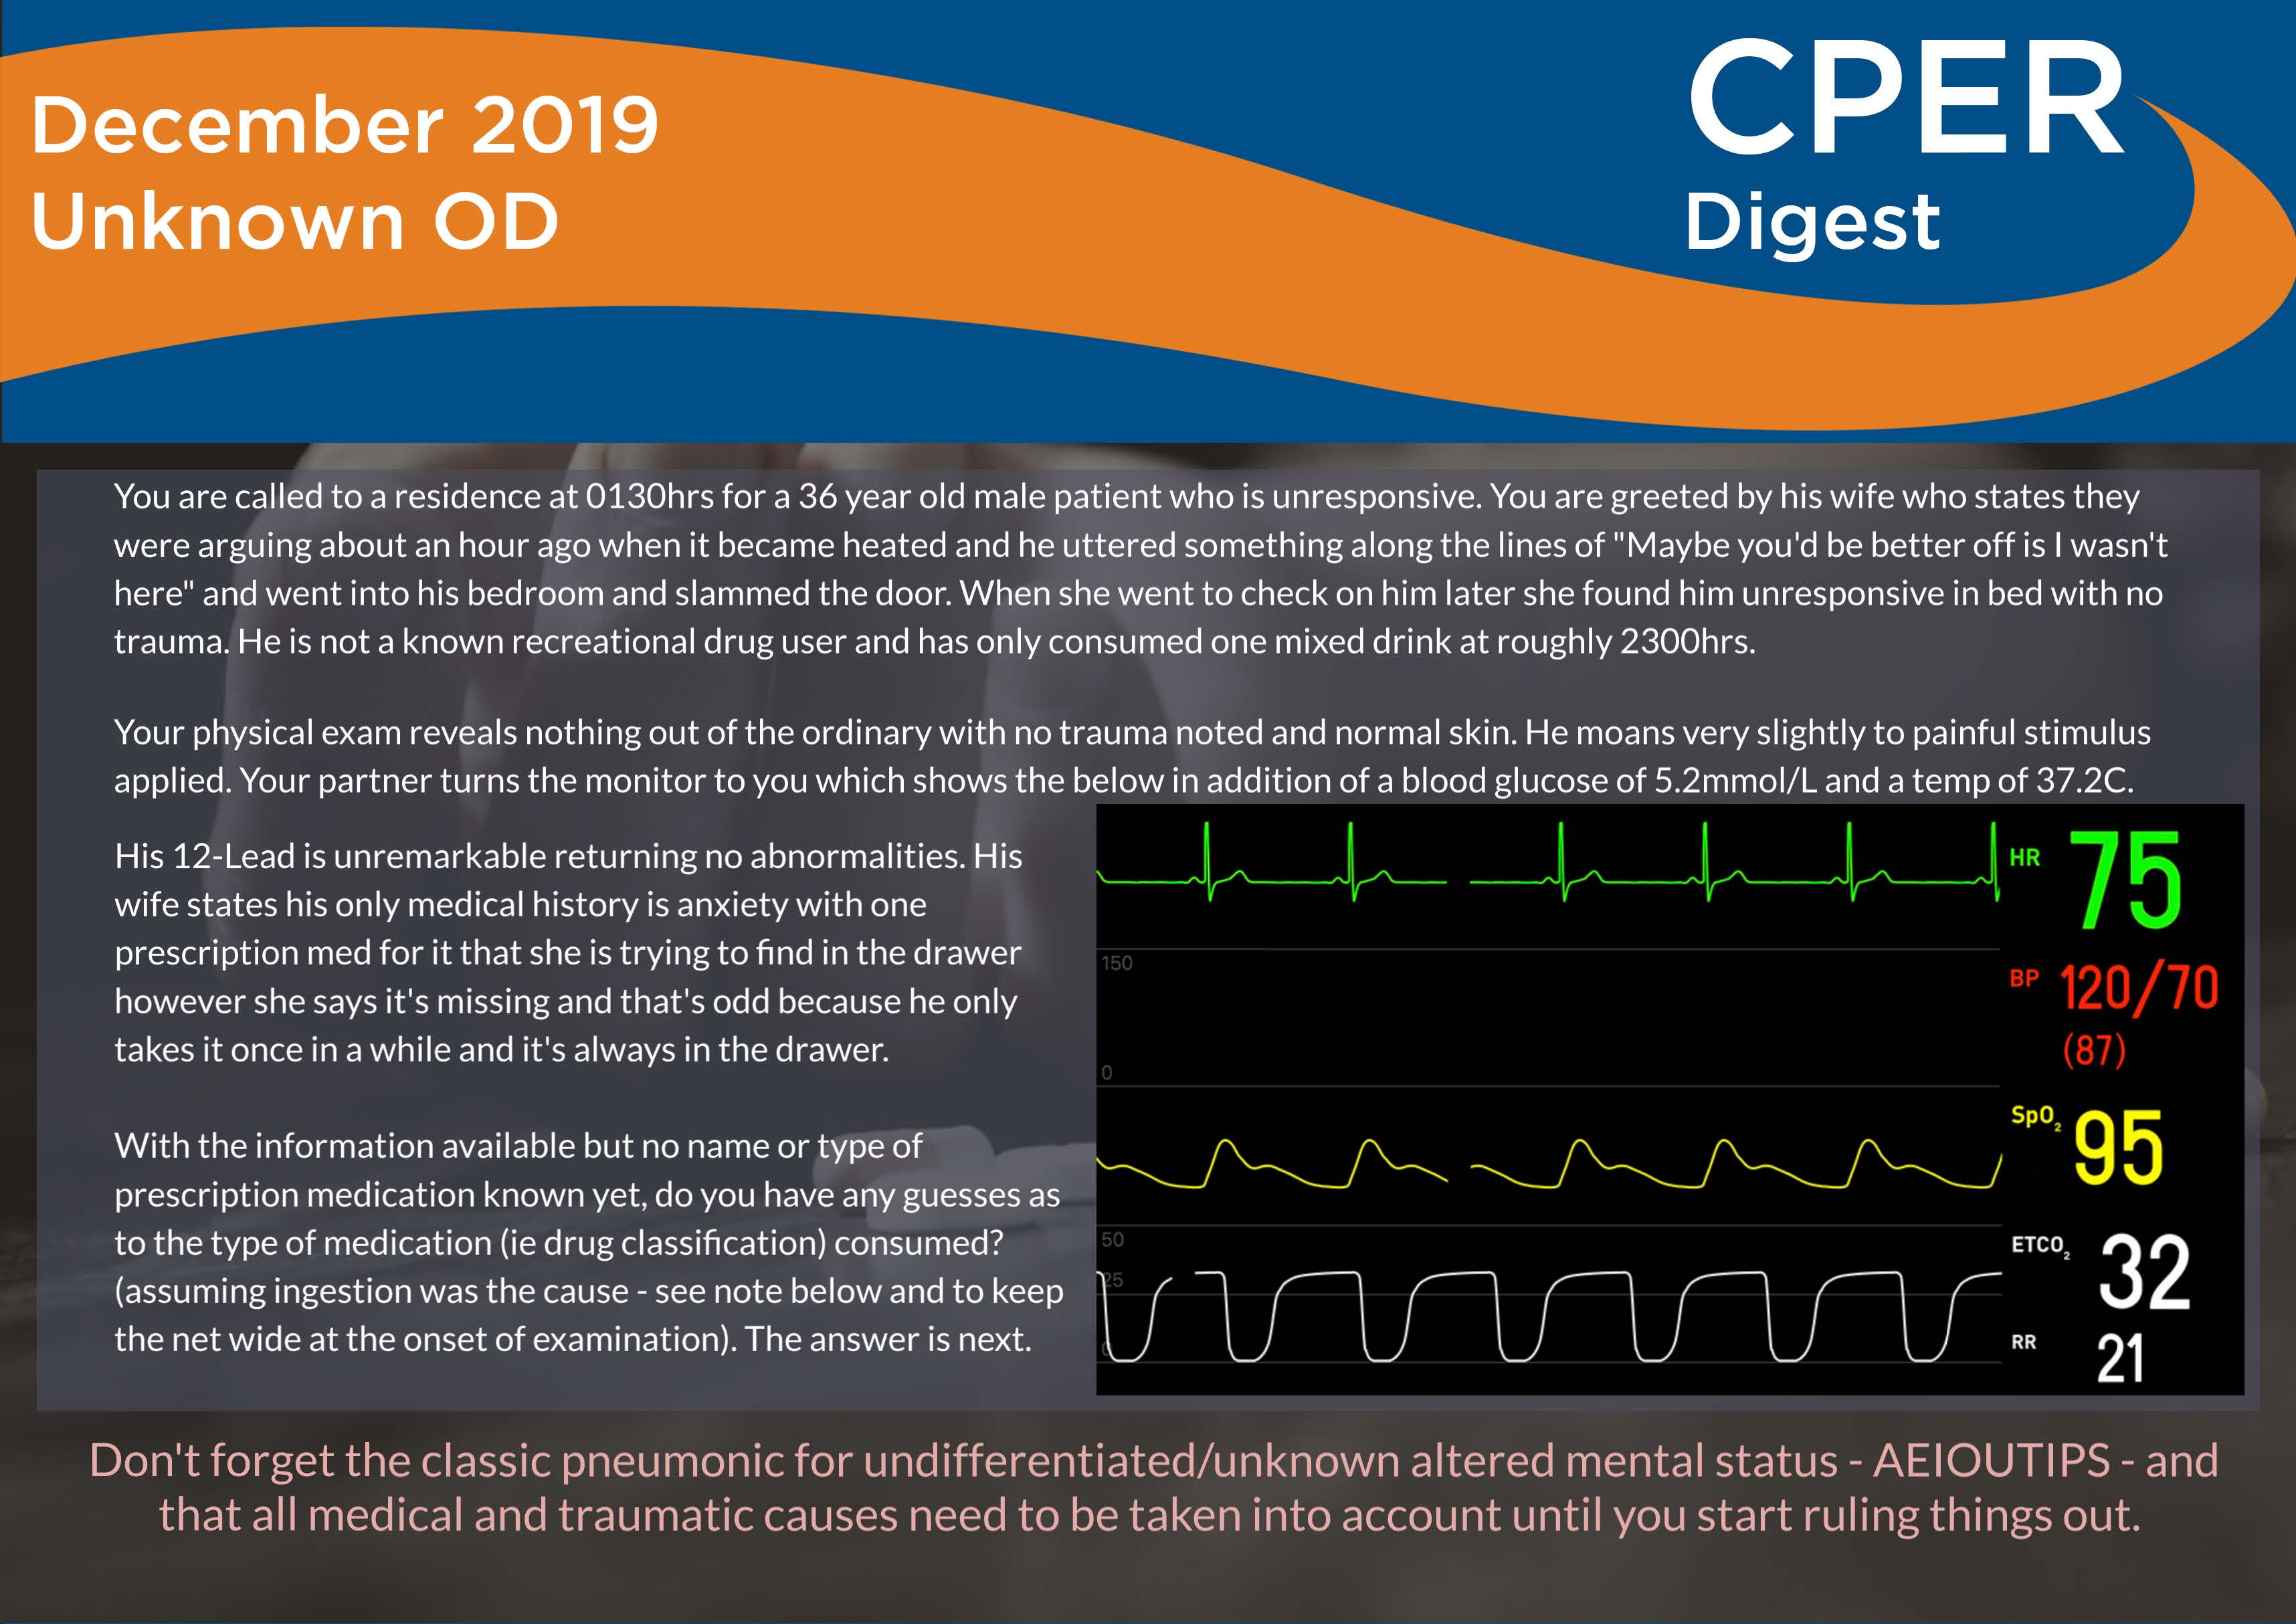 CPER Digest December 2019 Unknown OD FINAL Page 1